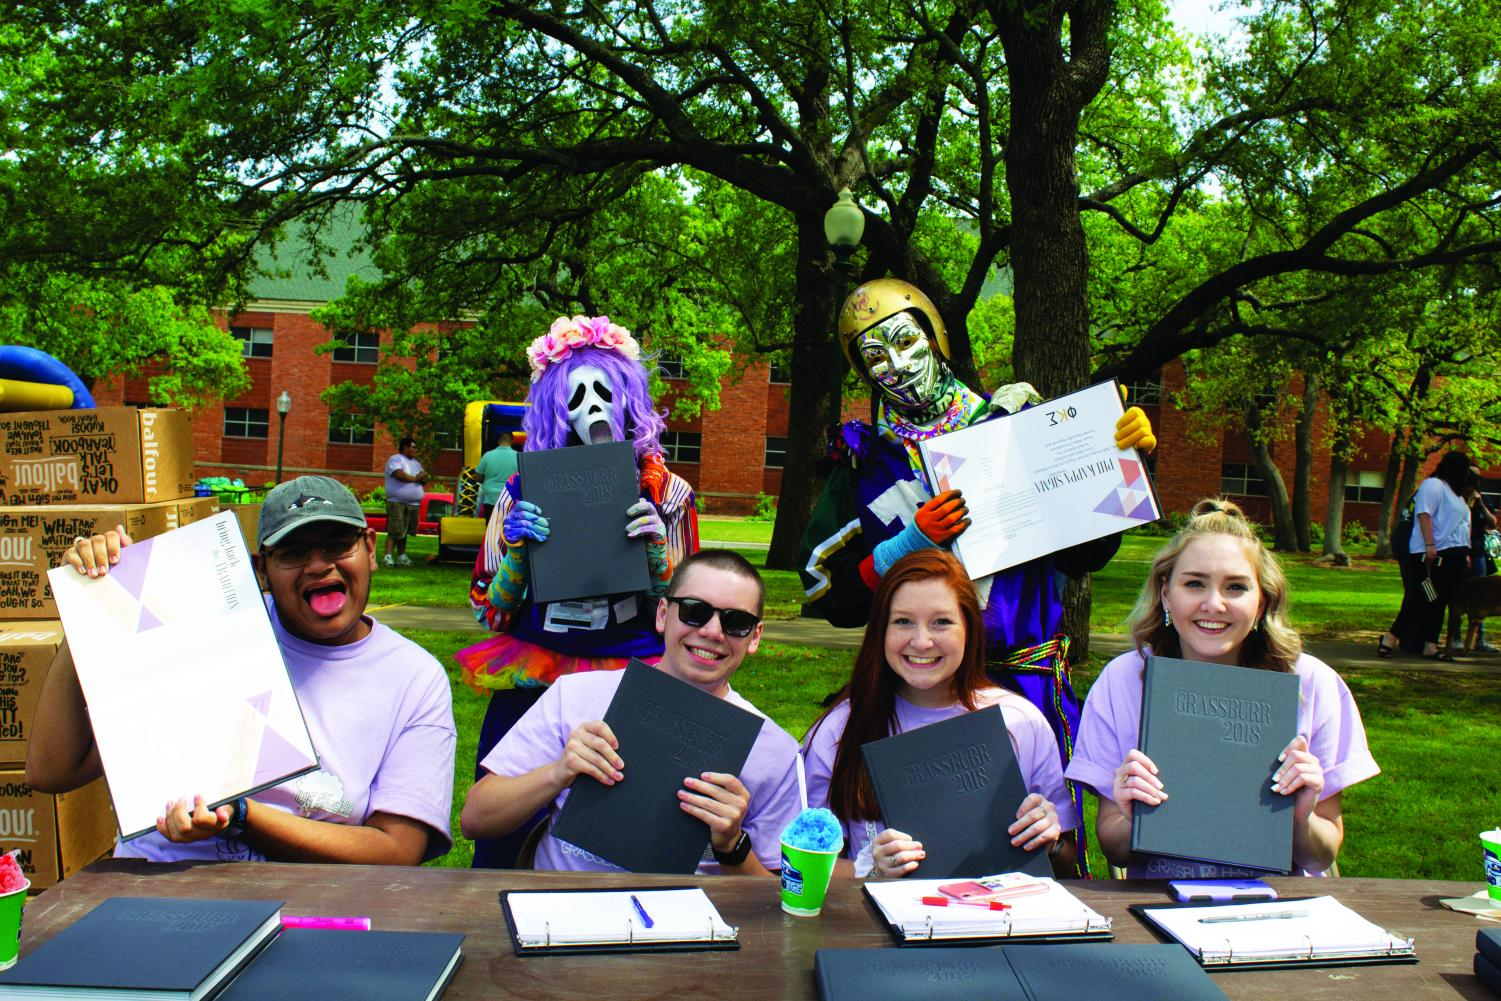 Omar Herera, Joseph Seaman, Hannah Ekwall, and Shelby Smith promote the Grassburr with the Purple Poo. The Grassburr is the official yearbook of Tarleton, started in  1916.